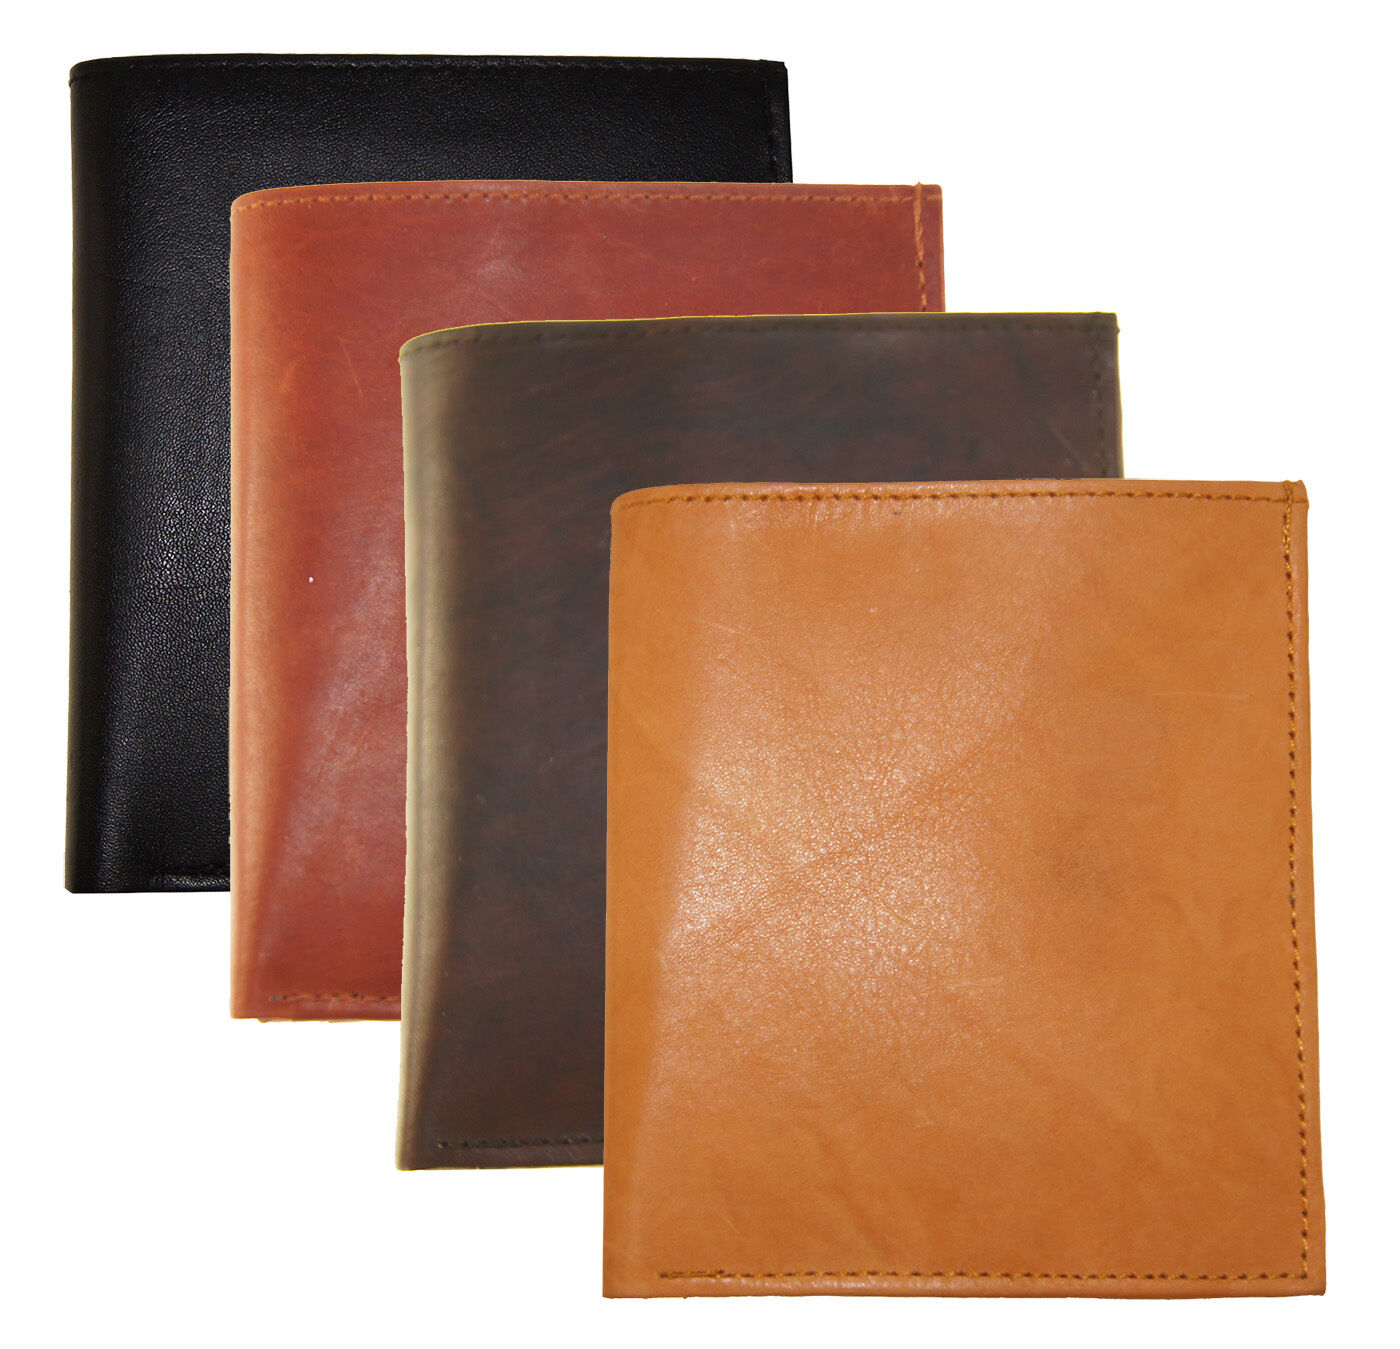 New Men's Leather Bifold Wallet Slim Hipster Cowhide Credit Card/ID and Inserts